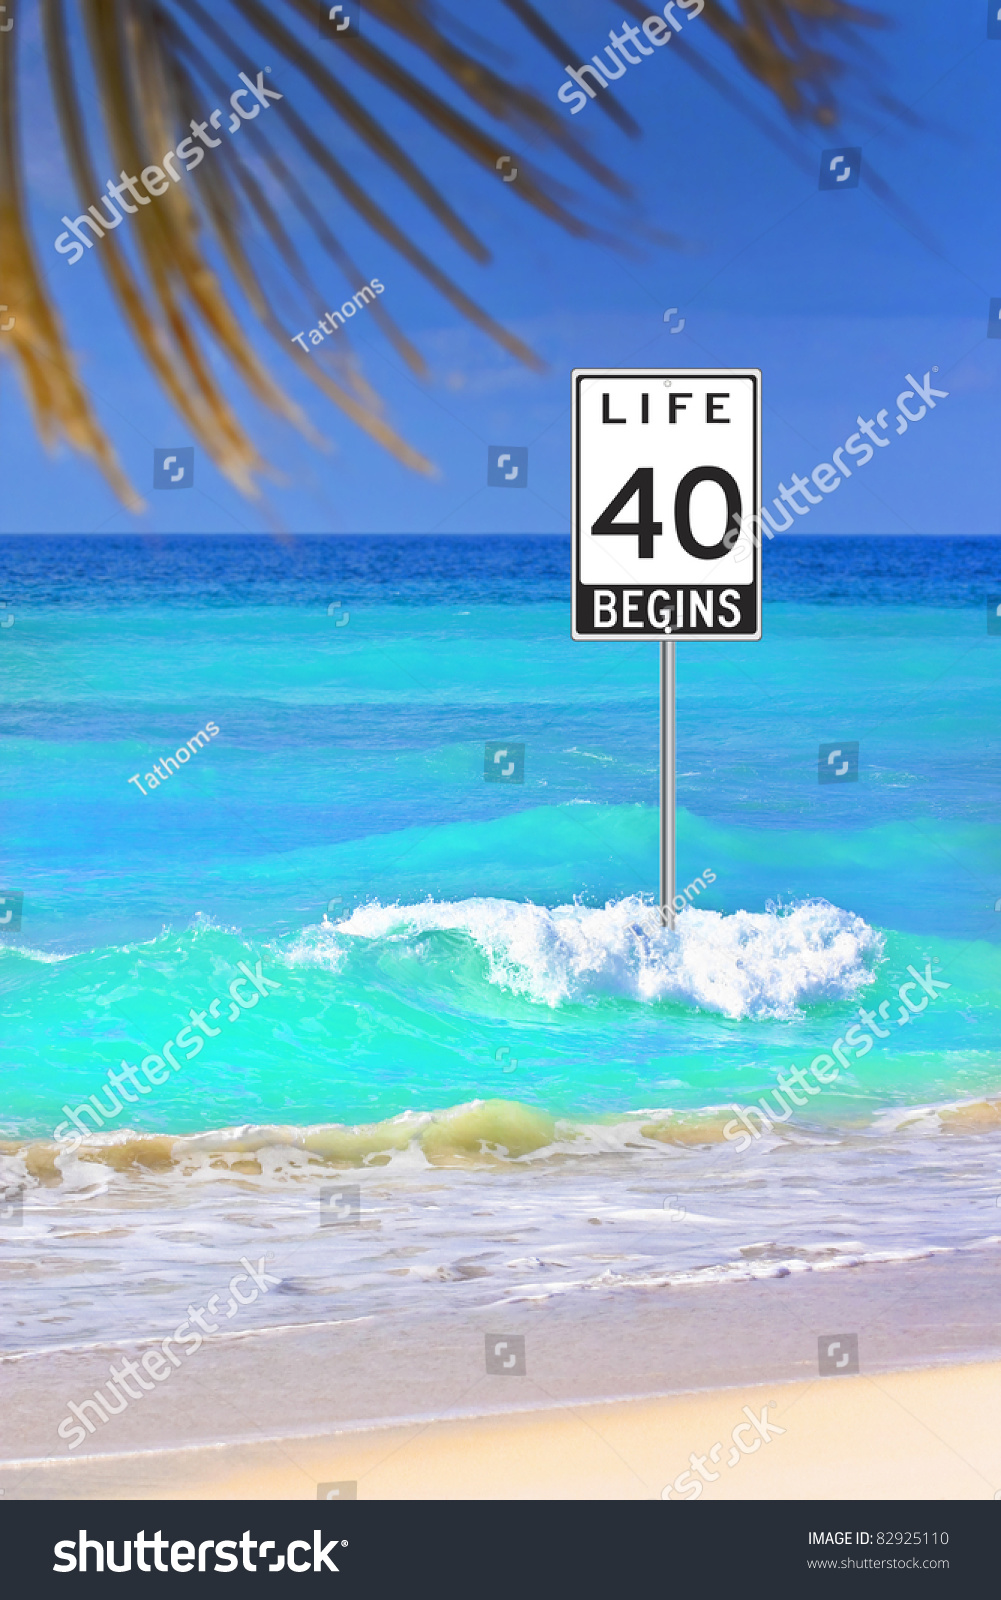 Life begins at 40. Road sign in the ocean as a optimistic warning.